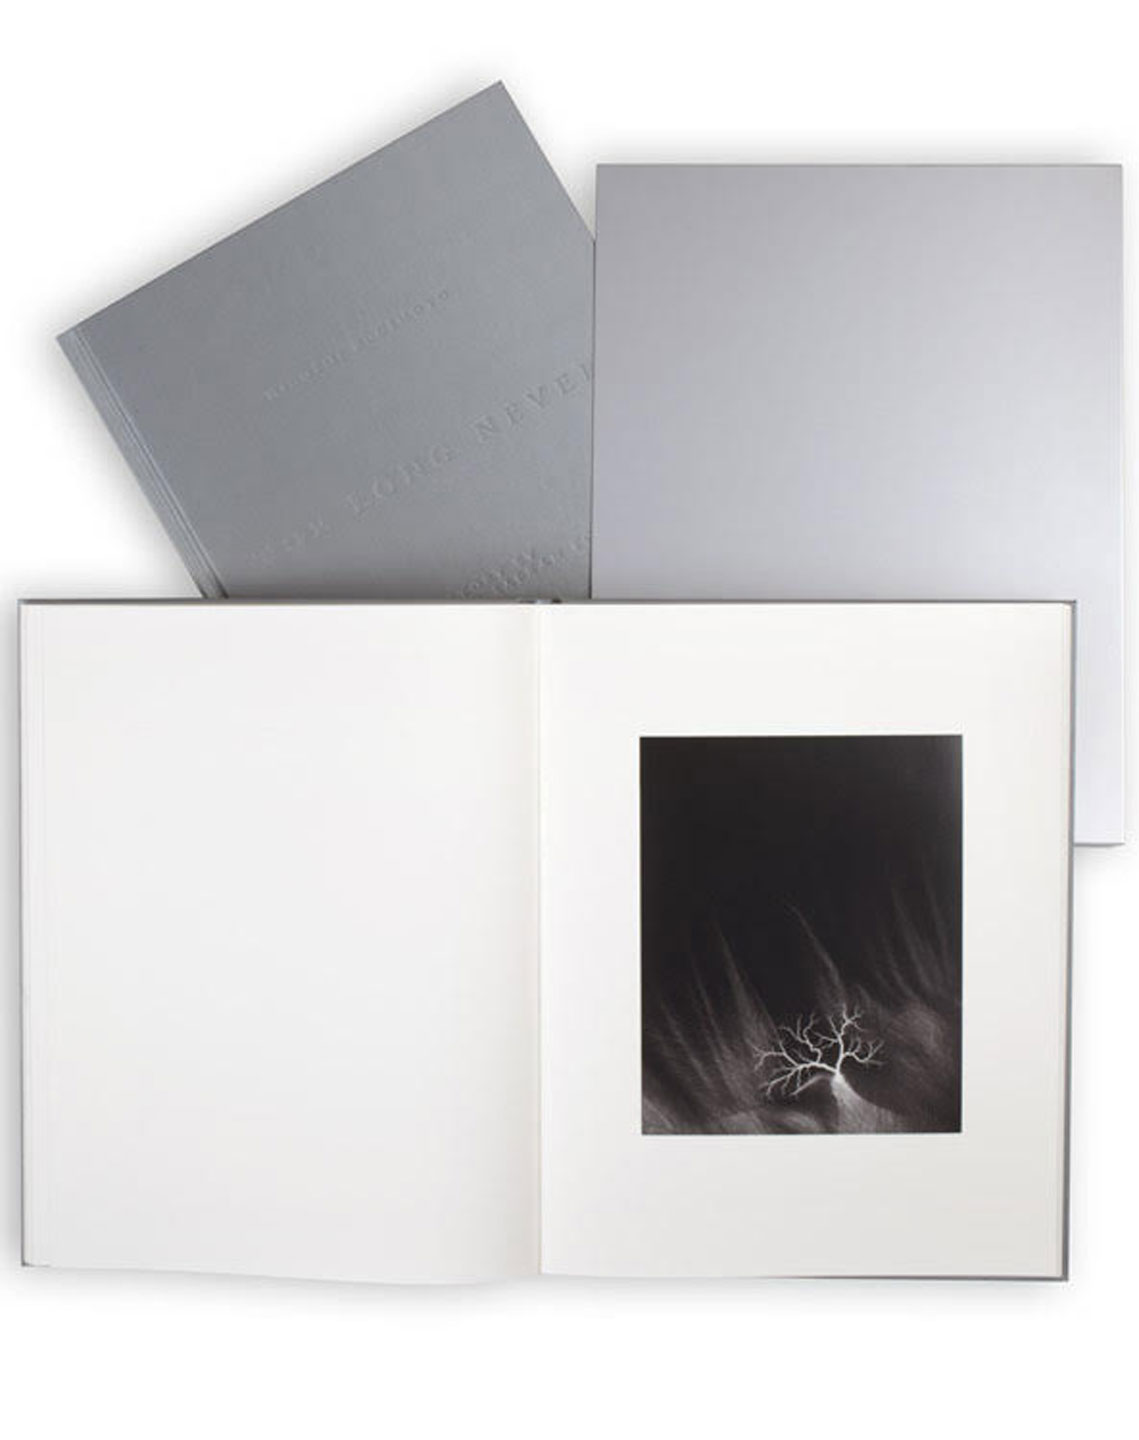 Hiroshi Sugimoto: The Long Never, Limited Edition [SIGNED]